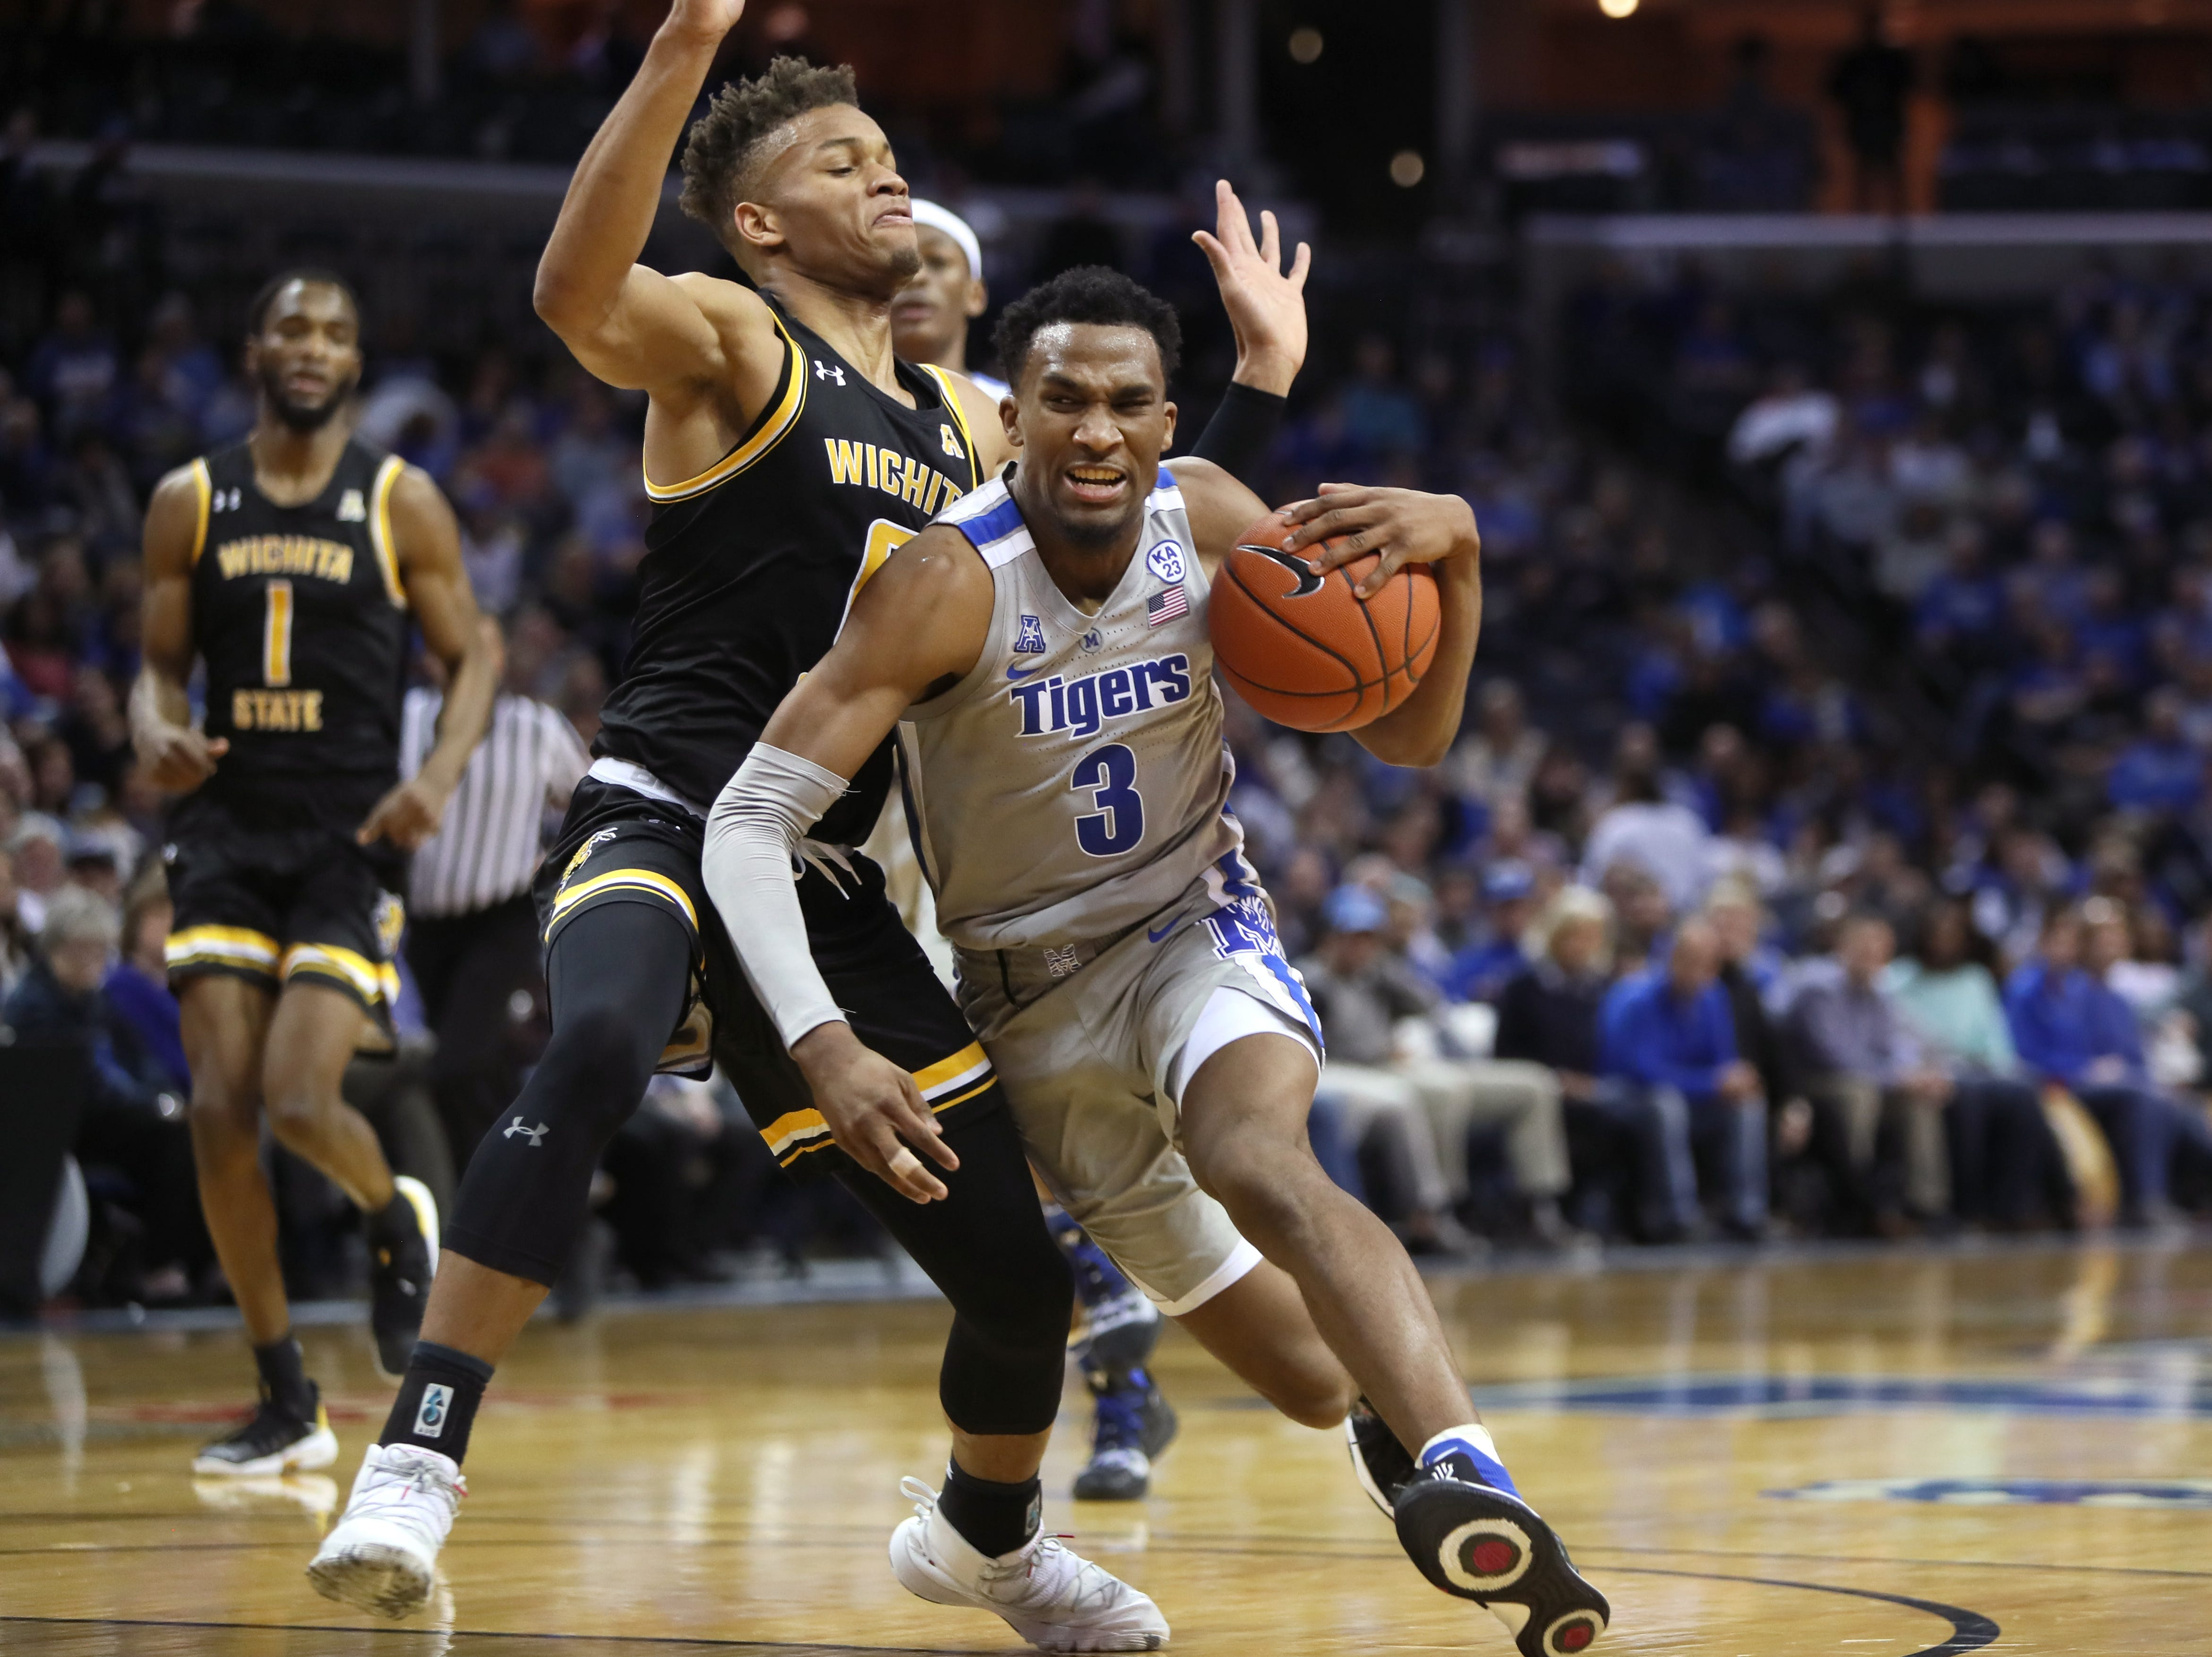 Memphis Tigers guard 	Jeremiah Martin drives past Wichita State Shockers guard Dexter Dennis during their game at the FedExForum on Thursday, Jan. 3, 2019.